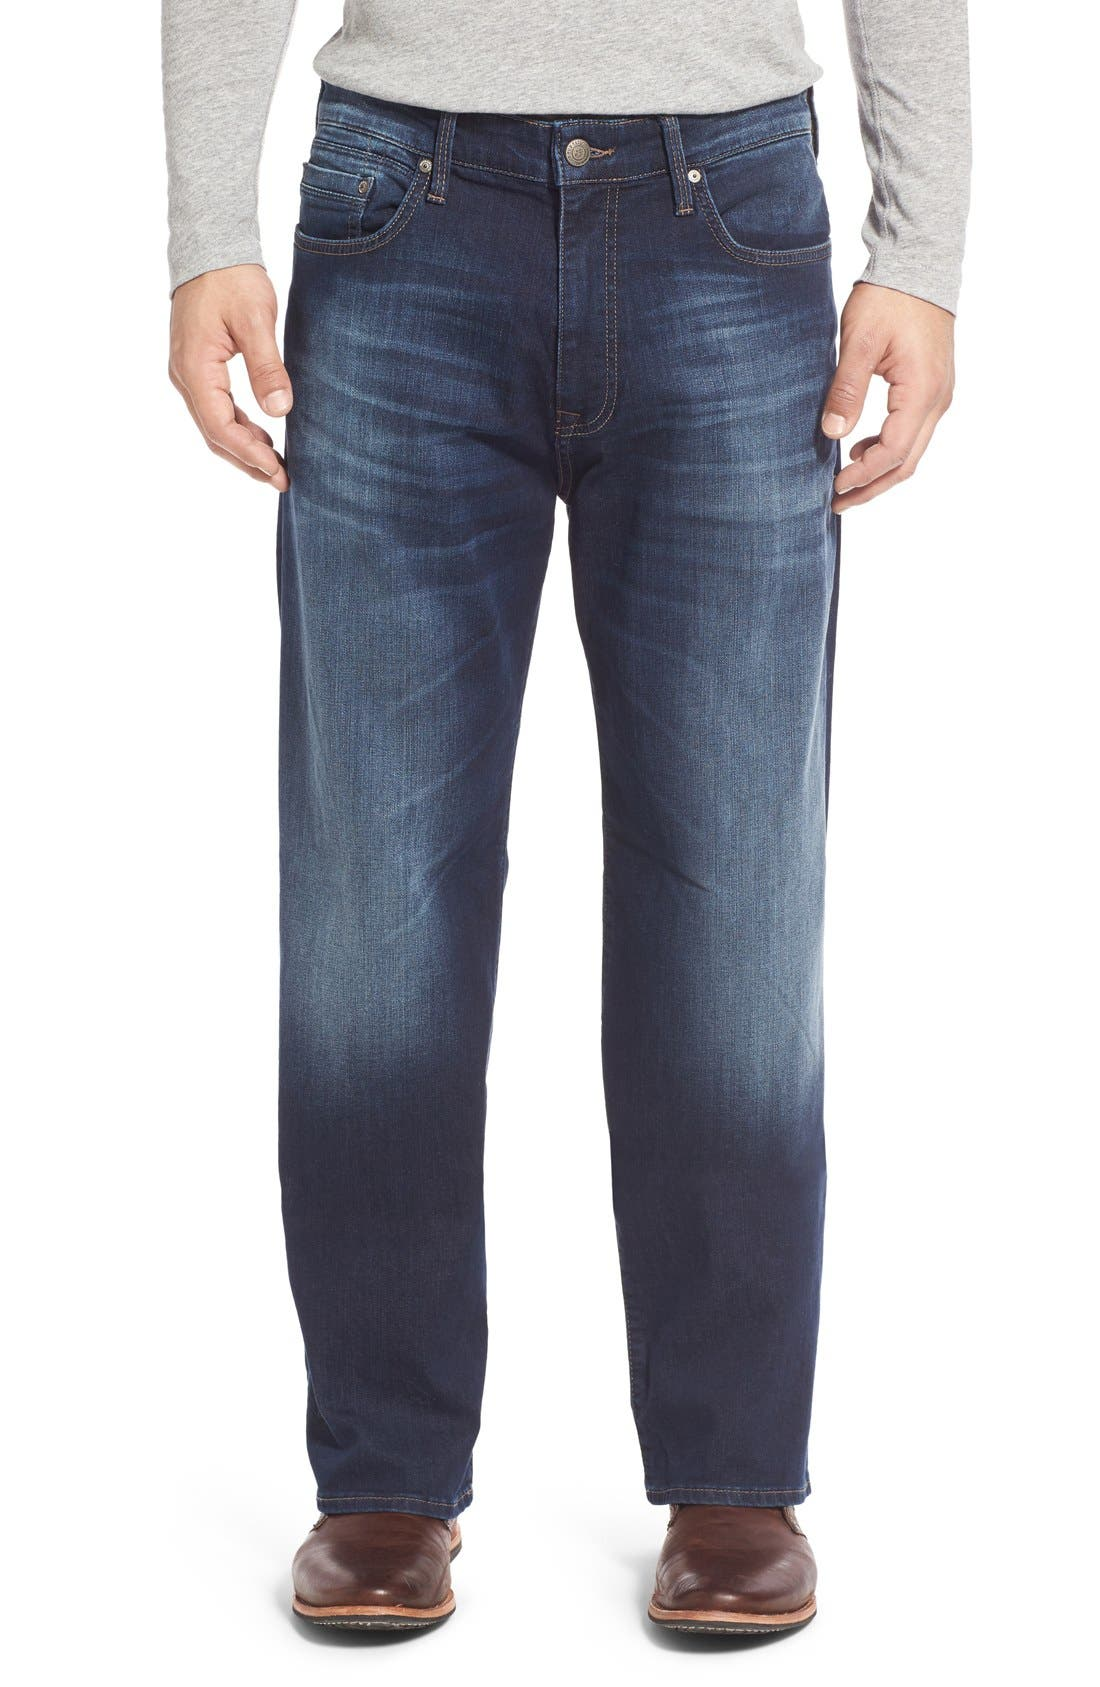 'Max' Relaxed Fit Jeans,                             Alternate thumbnail 10, color,                             DARK WILLIAMSBURG